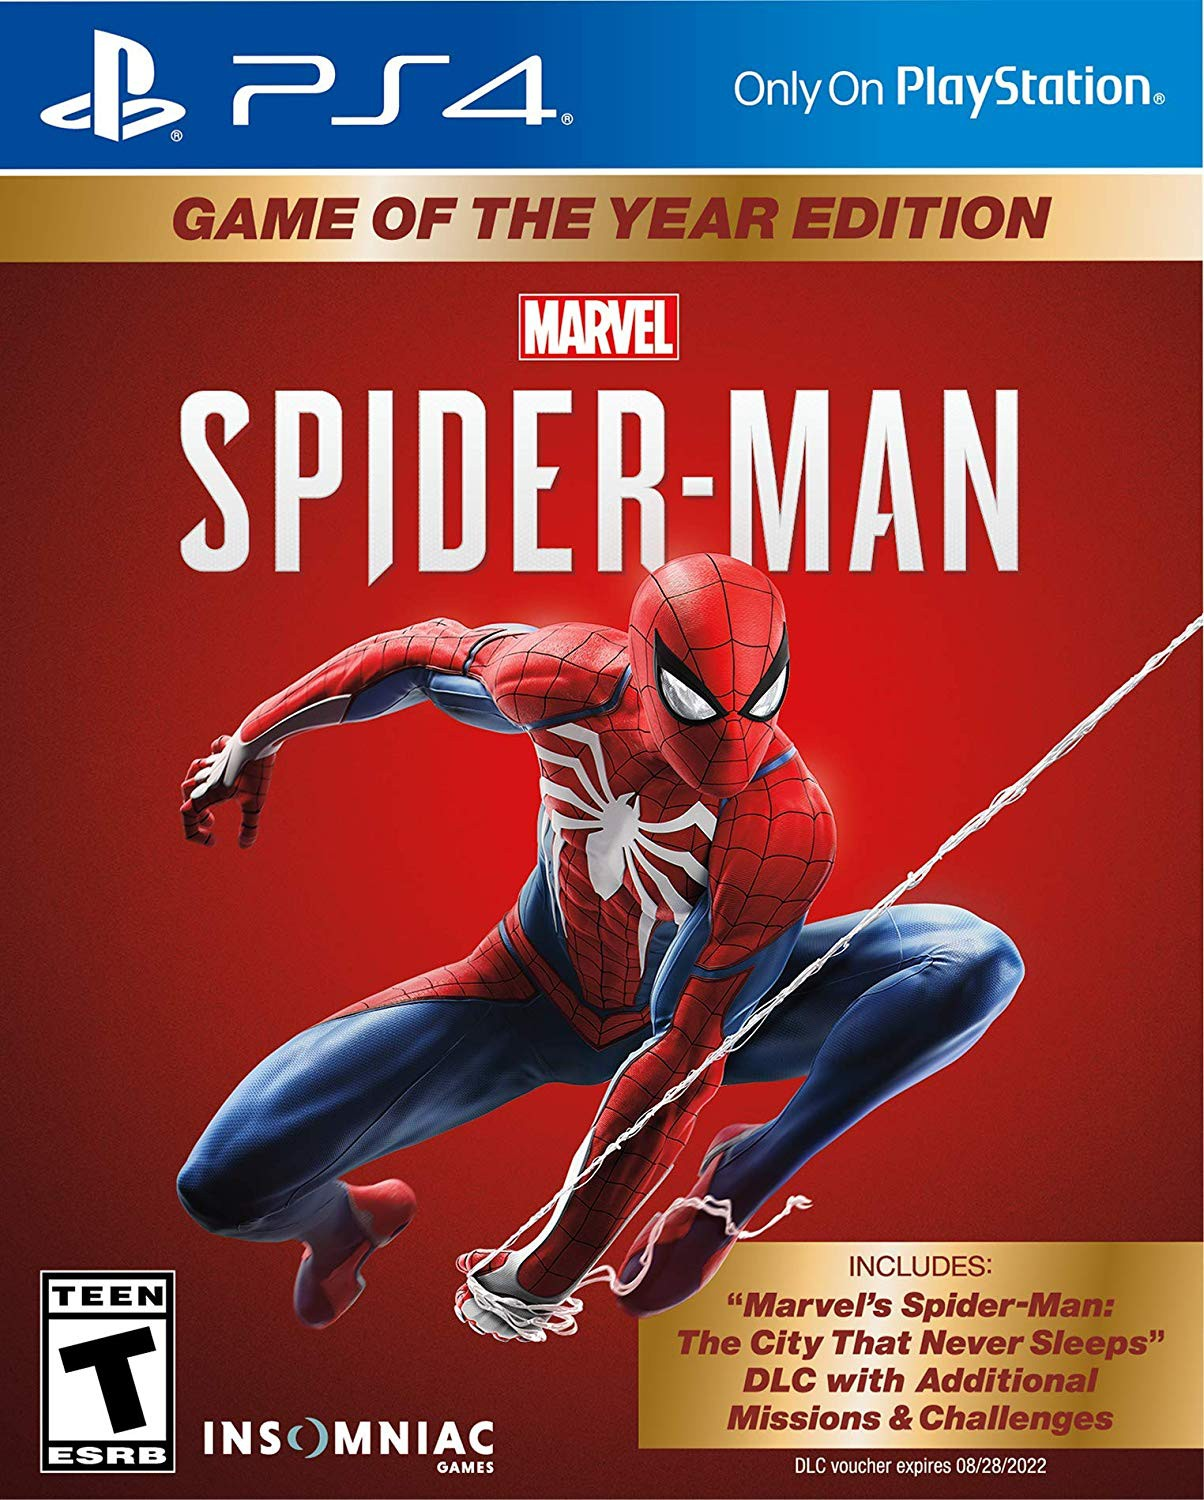 Marvel's Spider-Man: Standard Edition PS4